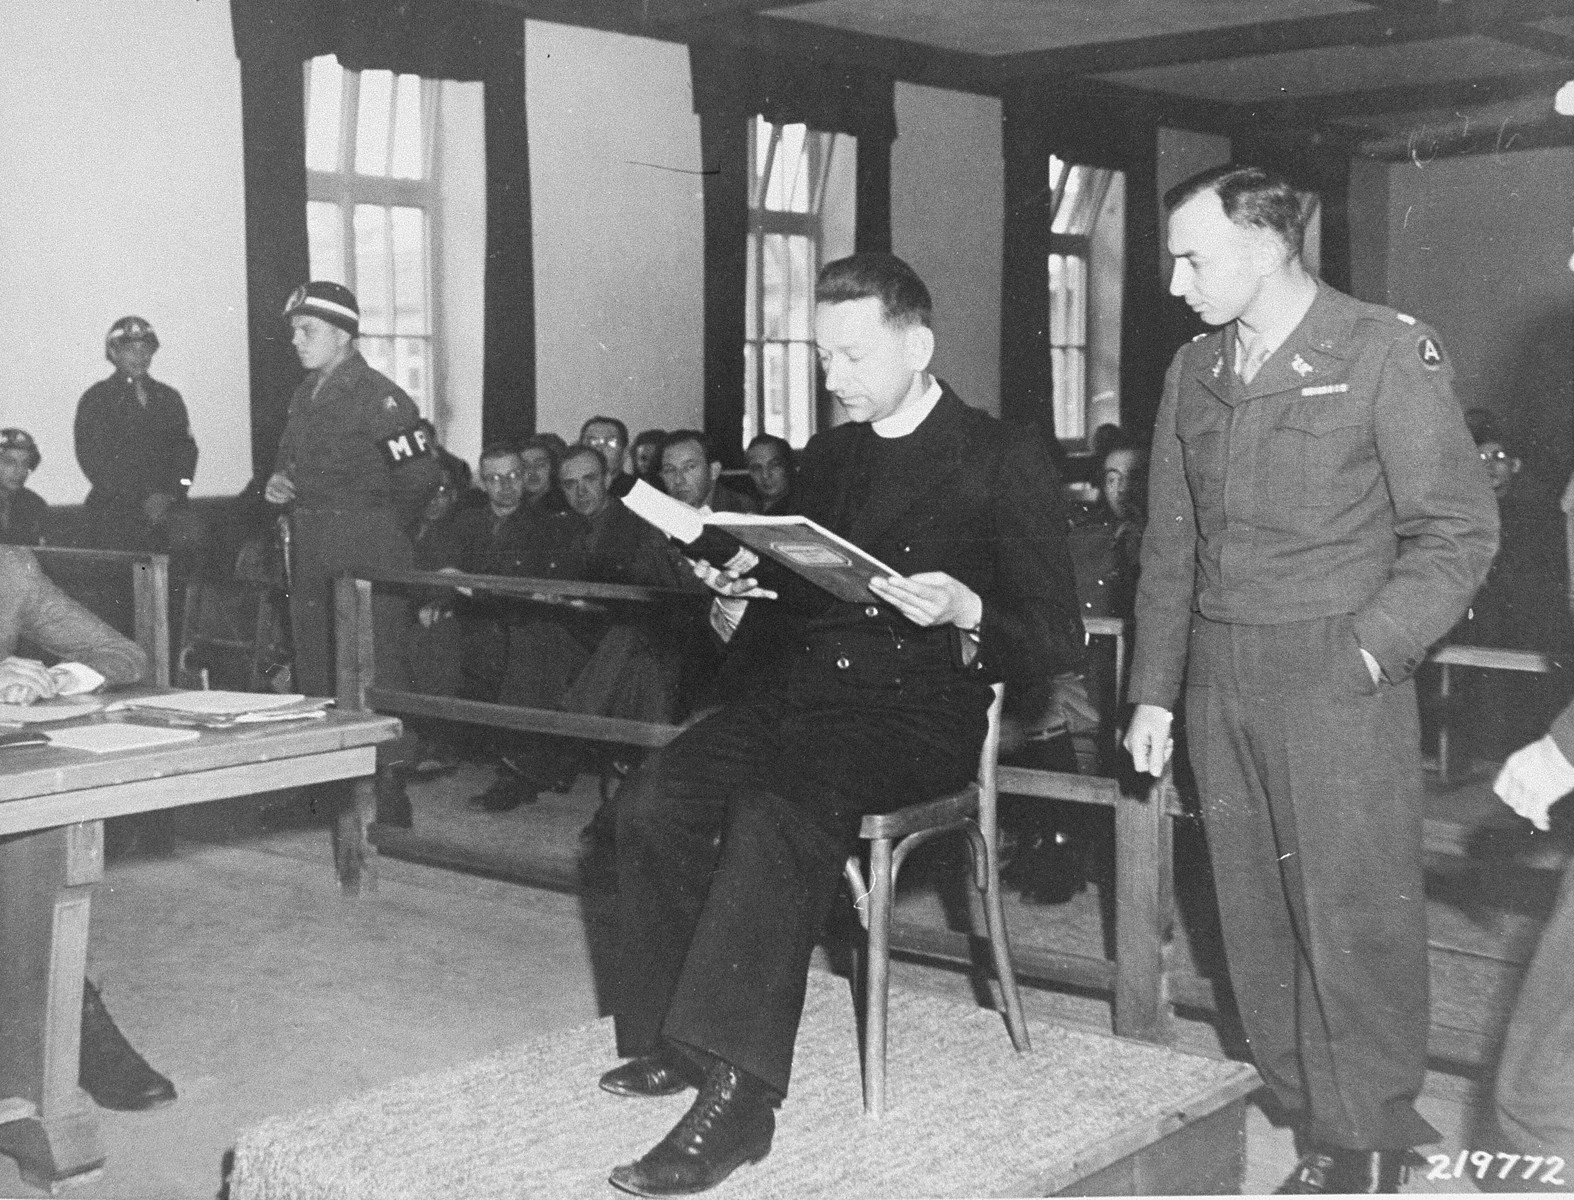 Polish priest Theodore Korcz reads to Lt. Colonel William Denson from a camp medical record presented as evidence at the trial of former camp personnel and prisoners from Dachau.    The log recorded the deaths of several Catholic priests who were used as subjects in malaria experiments.